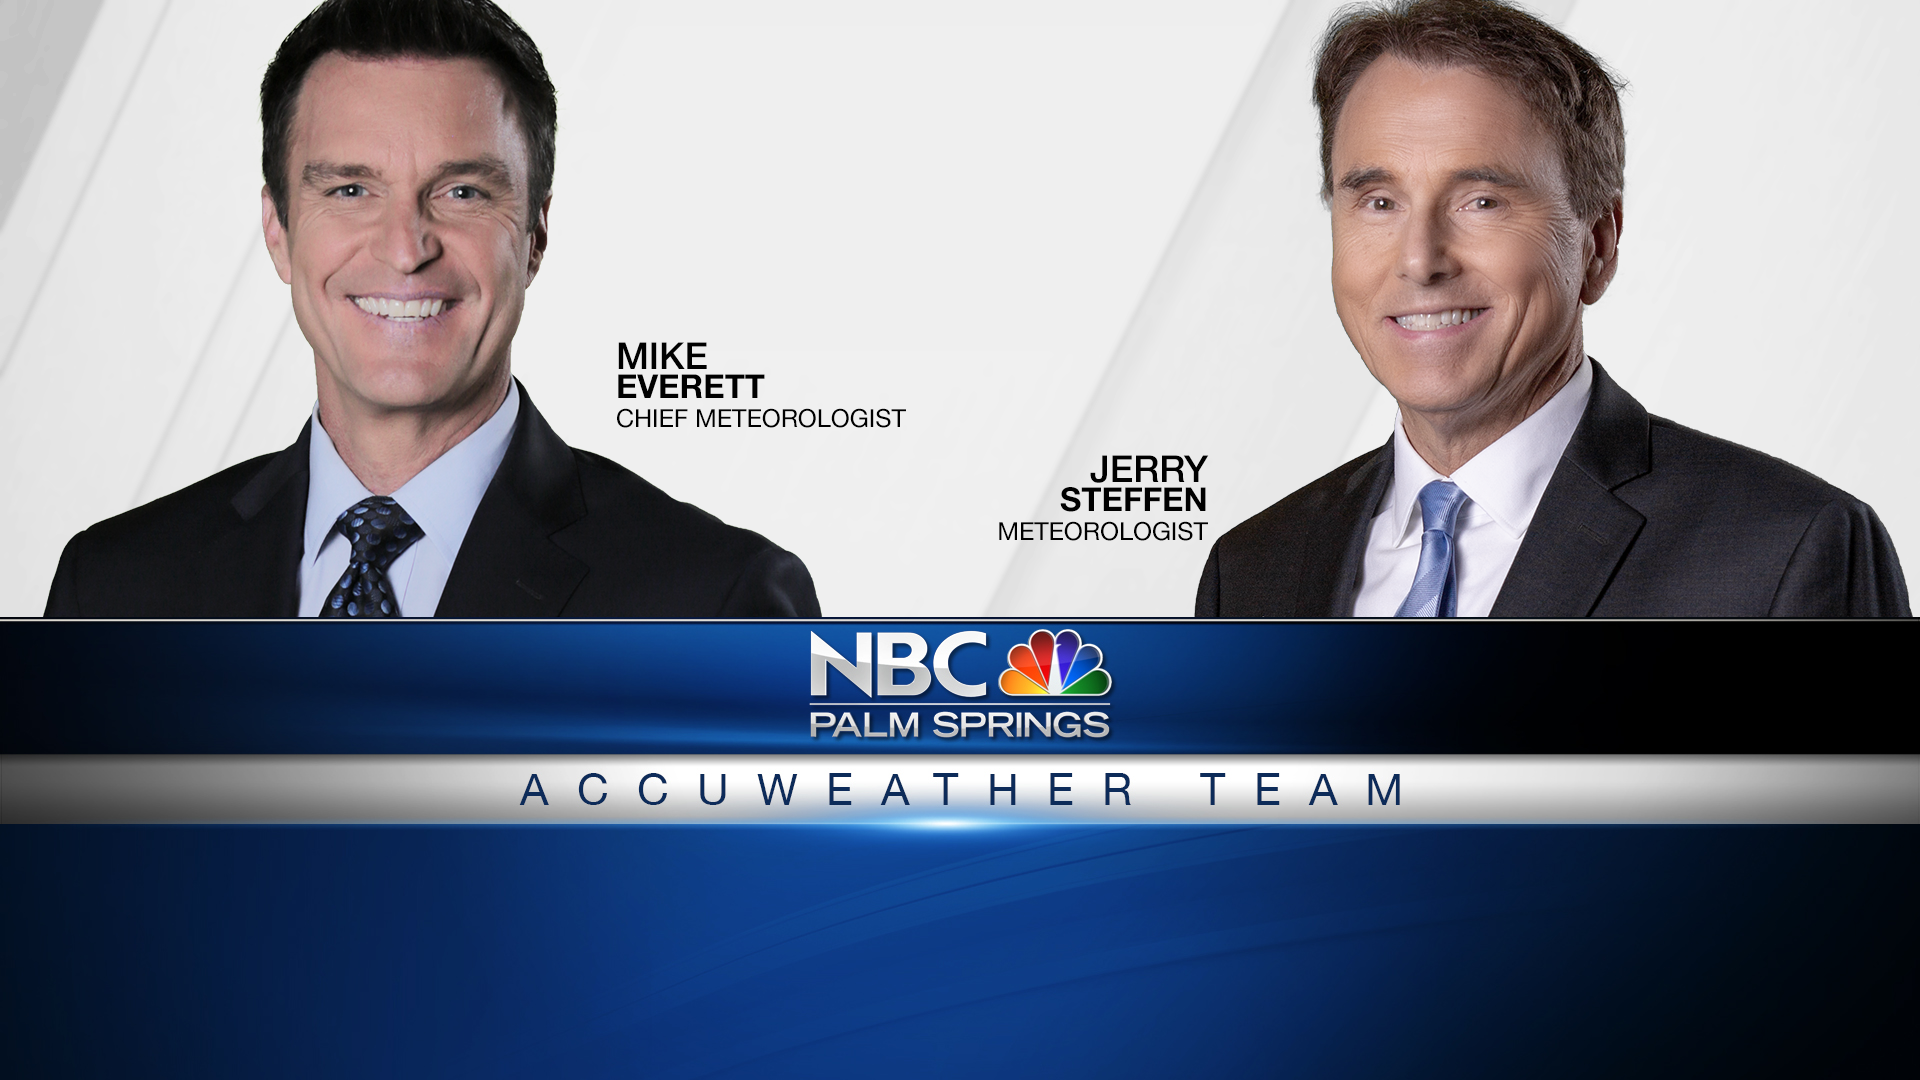 Daily Forecast – Mike